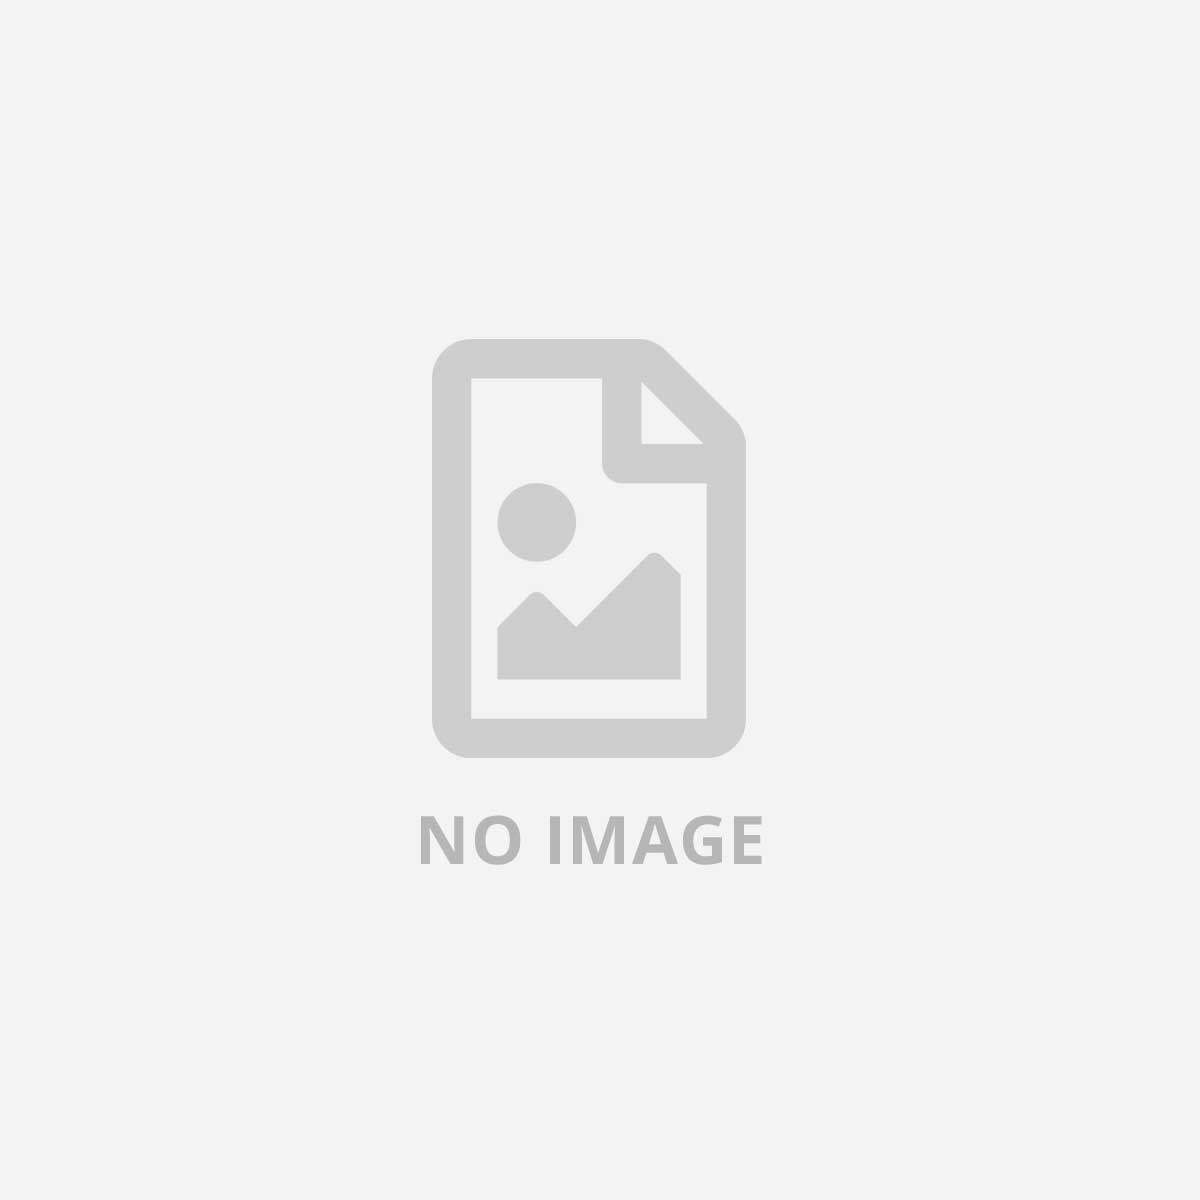 HAMLET LETTORE SMART CARD USB 3.1/C GEN.1